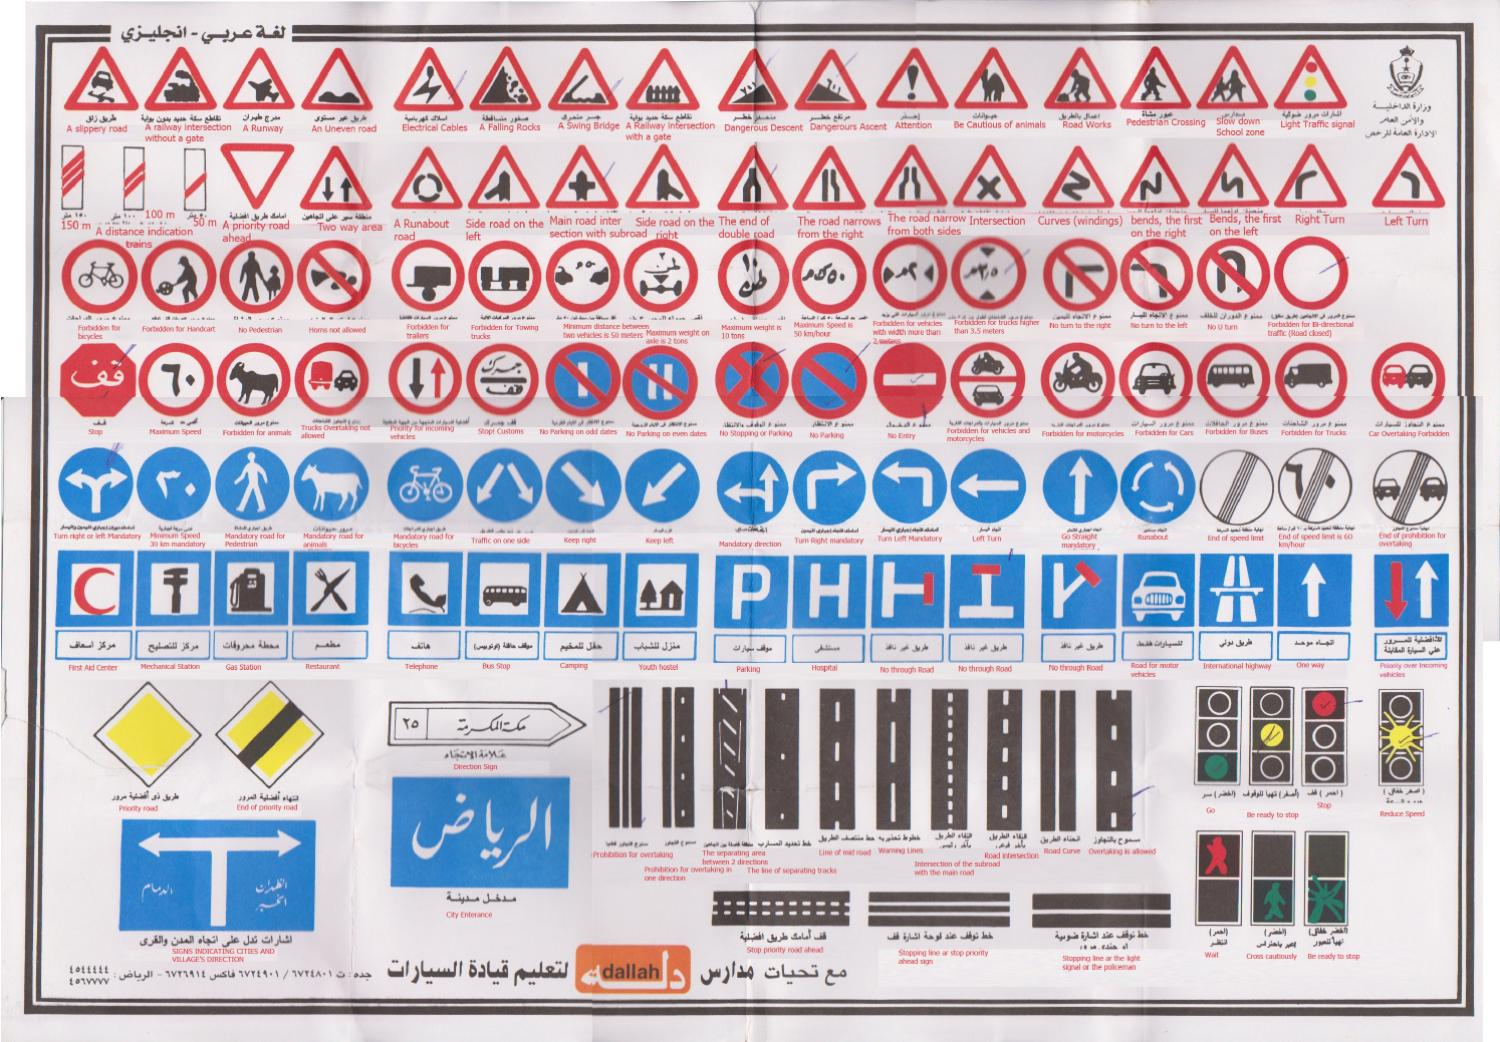 Driving test symbols and signs